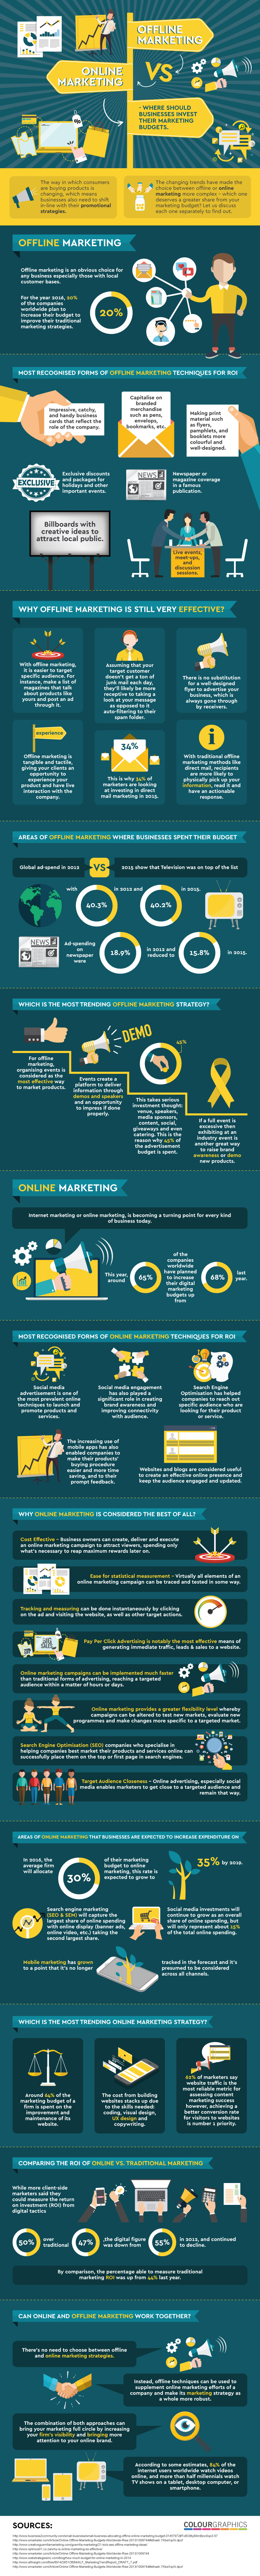 which is better for business online or offline marketing